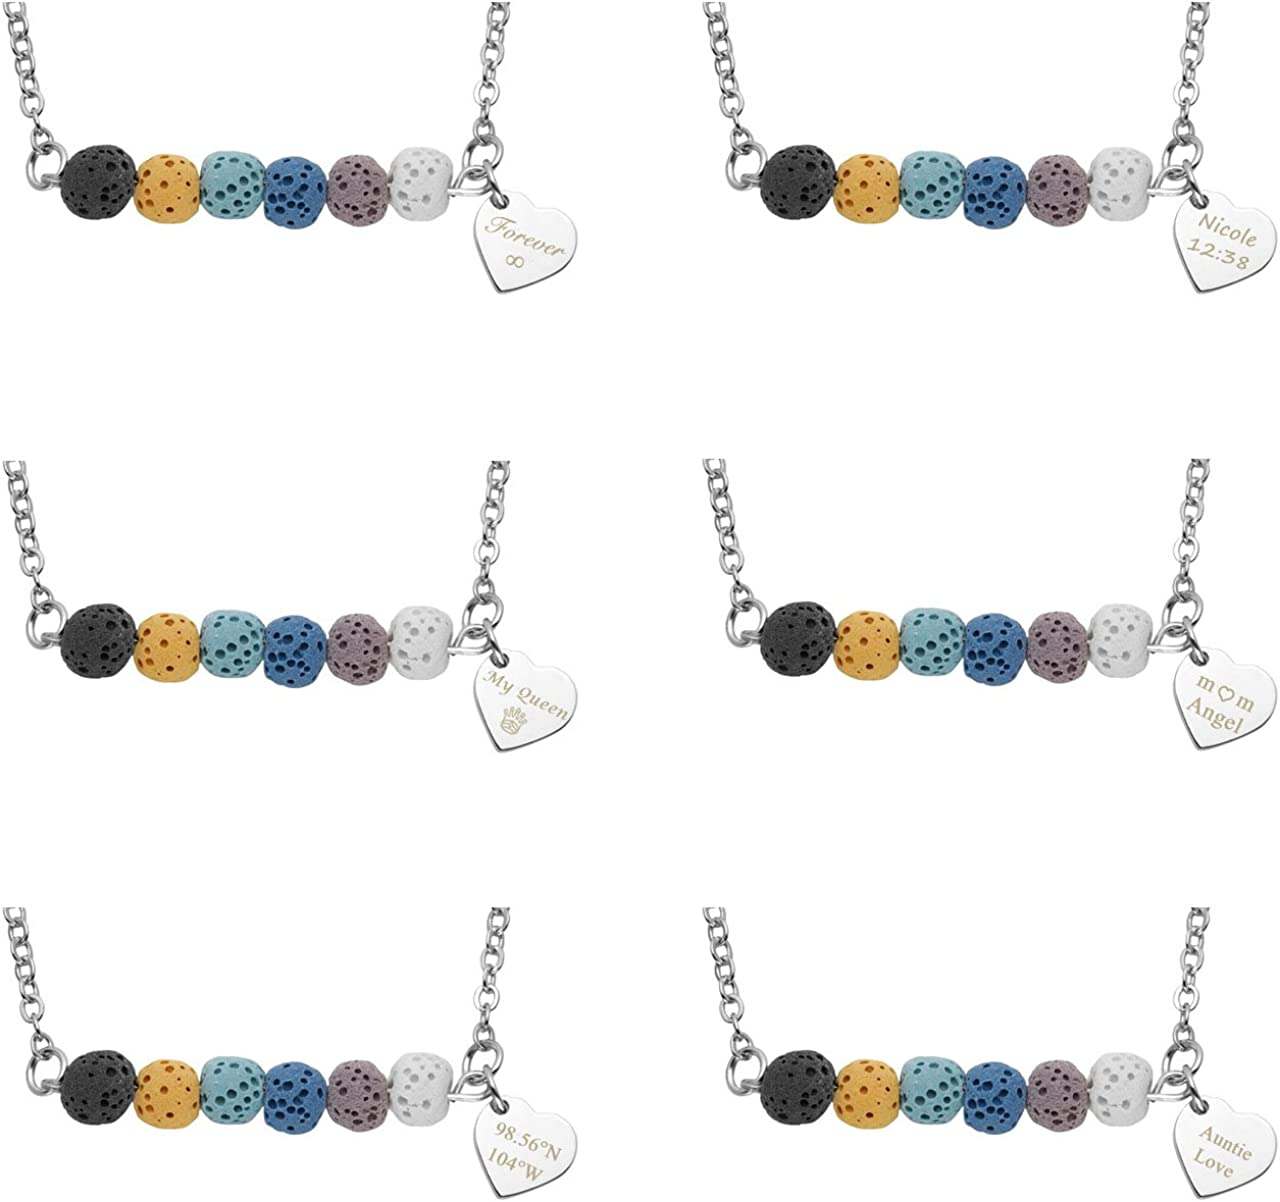 Top Plaza Personalized Custom Pendant Necklace Name Words Engraving Dyed Lava Rock Stone Essential Oil Diffuser Bar Necklace